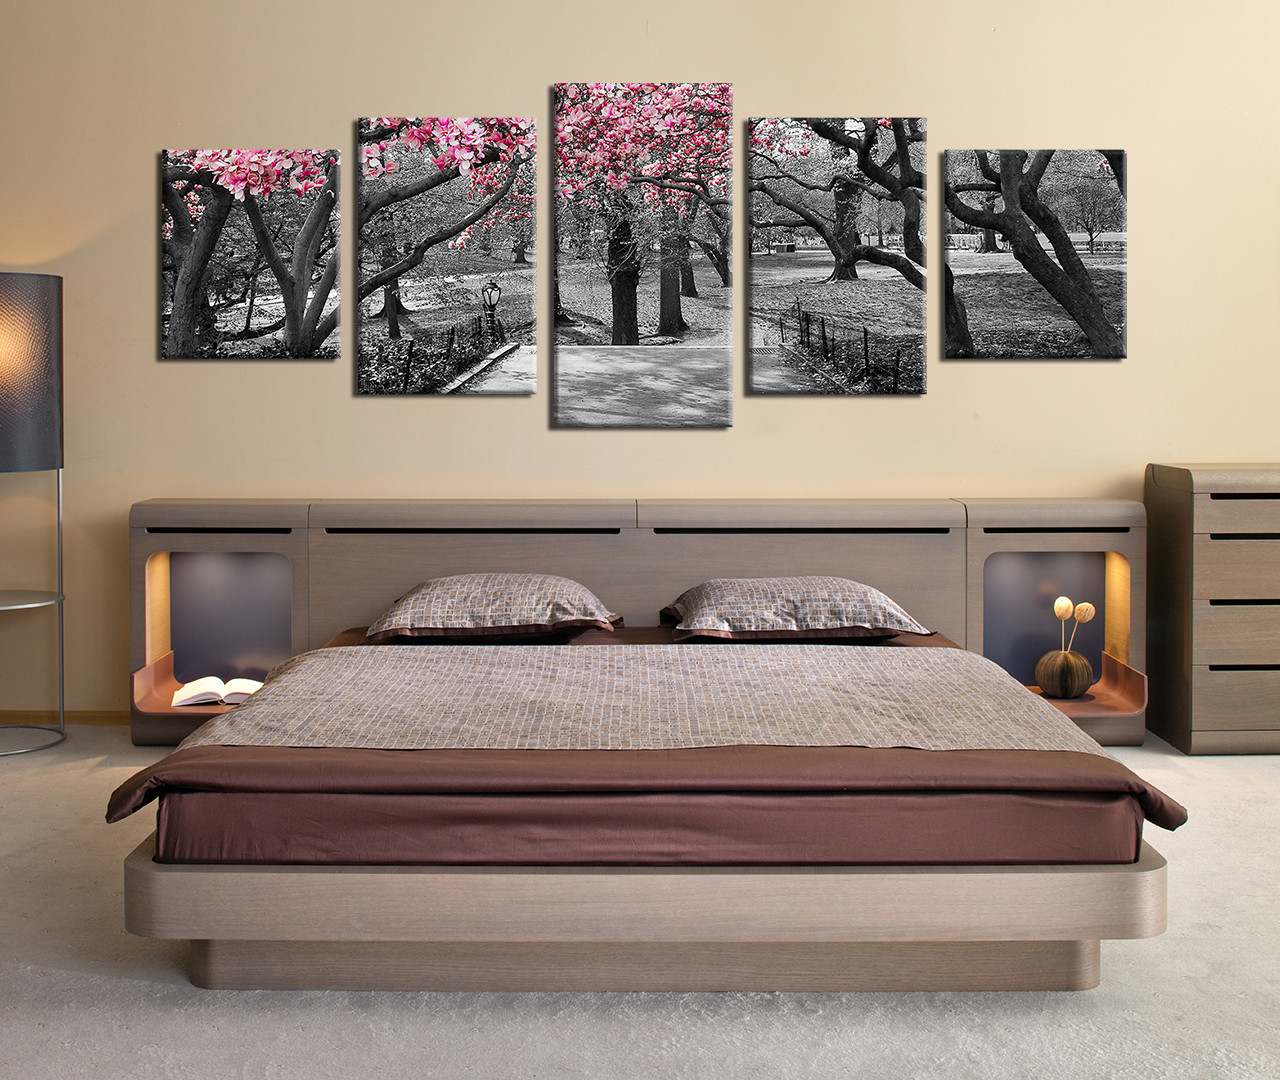 5 Piece Multi Panel Canvas, Grey Huge Pictures, Autumn Trees Wall Decor,  Panoramic Scenery Canvas Wall Art, Forest Photo Canvas, Nature Artwork